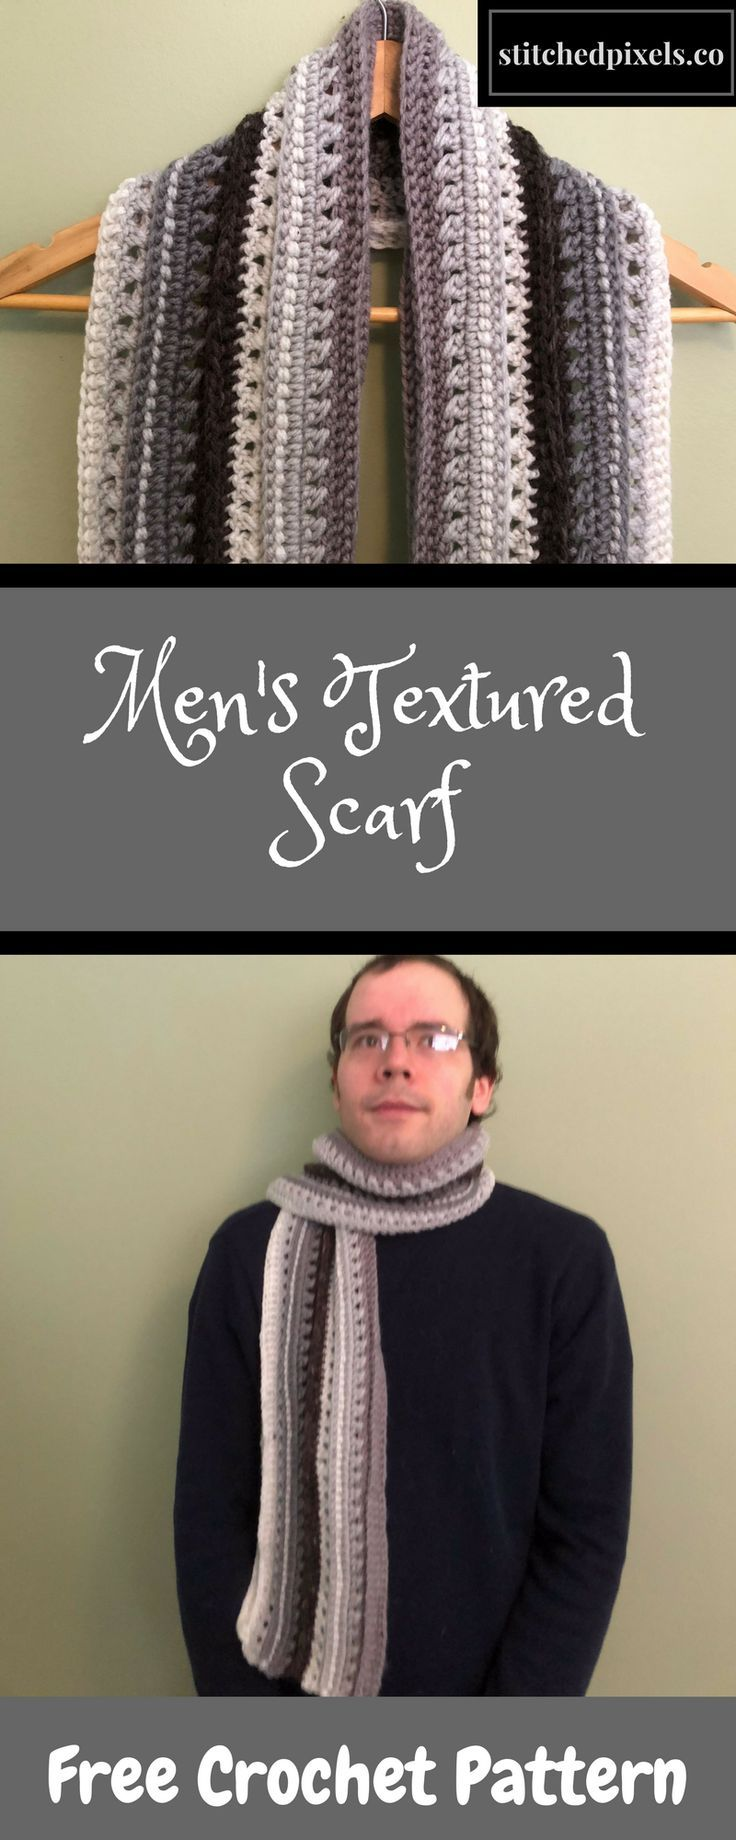 A perfect gift for a loved one is a mans scarf